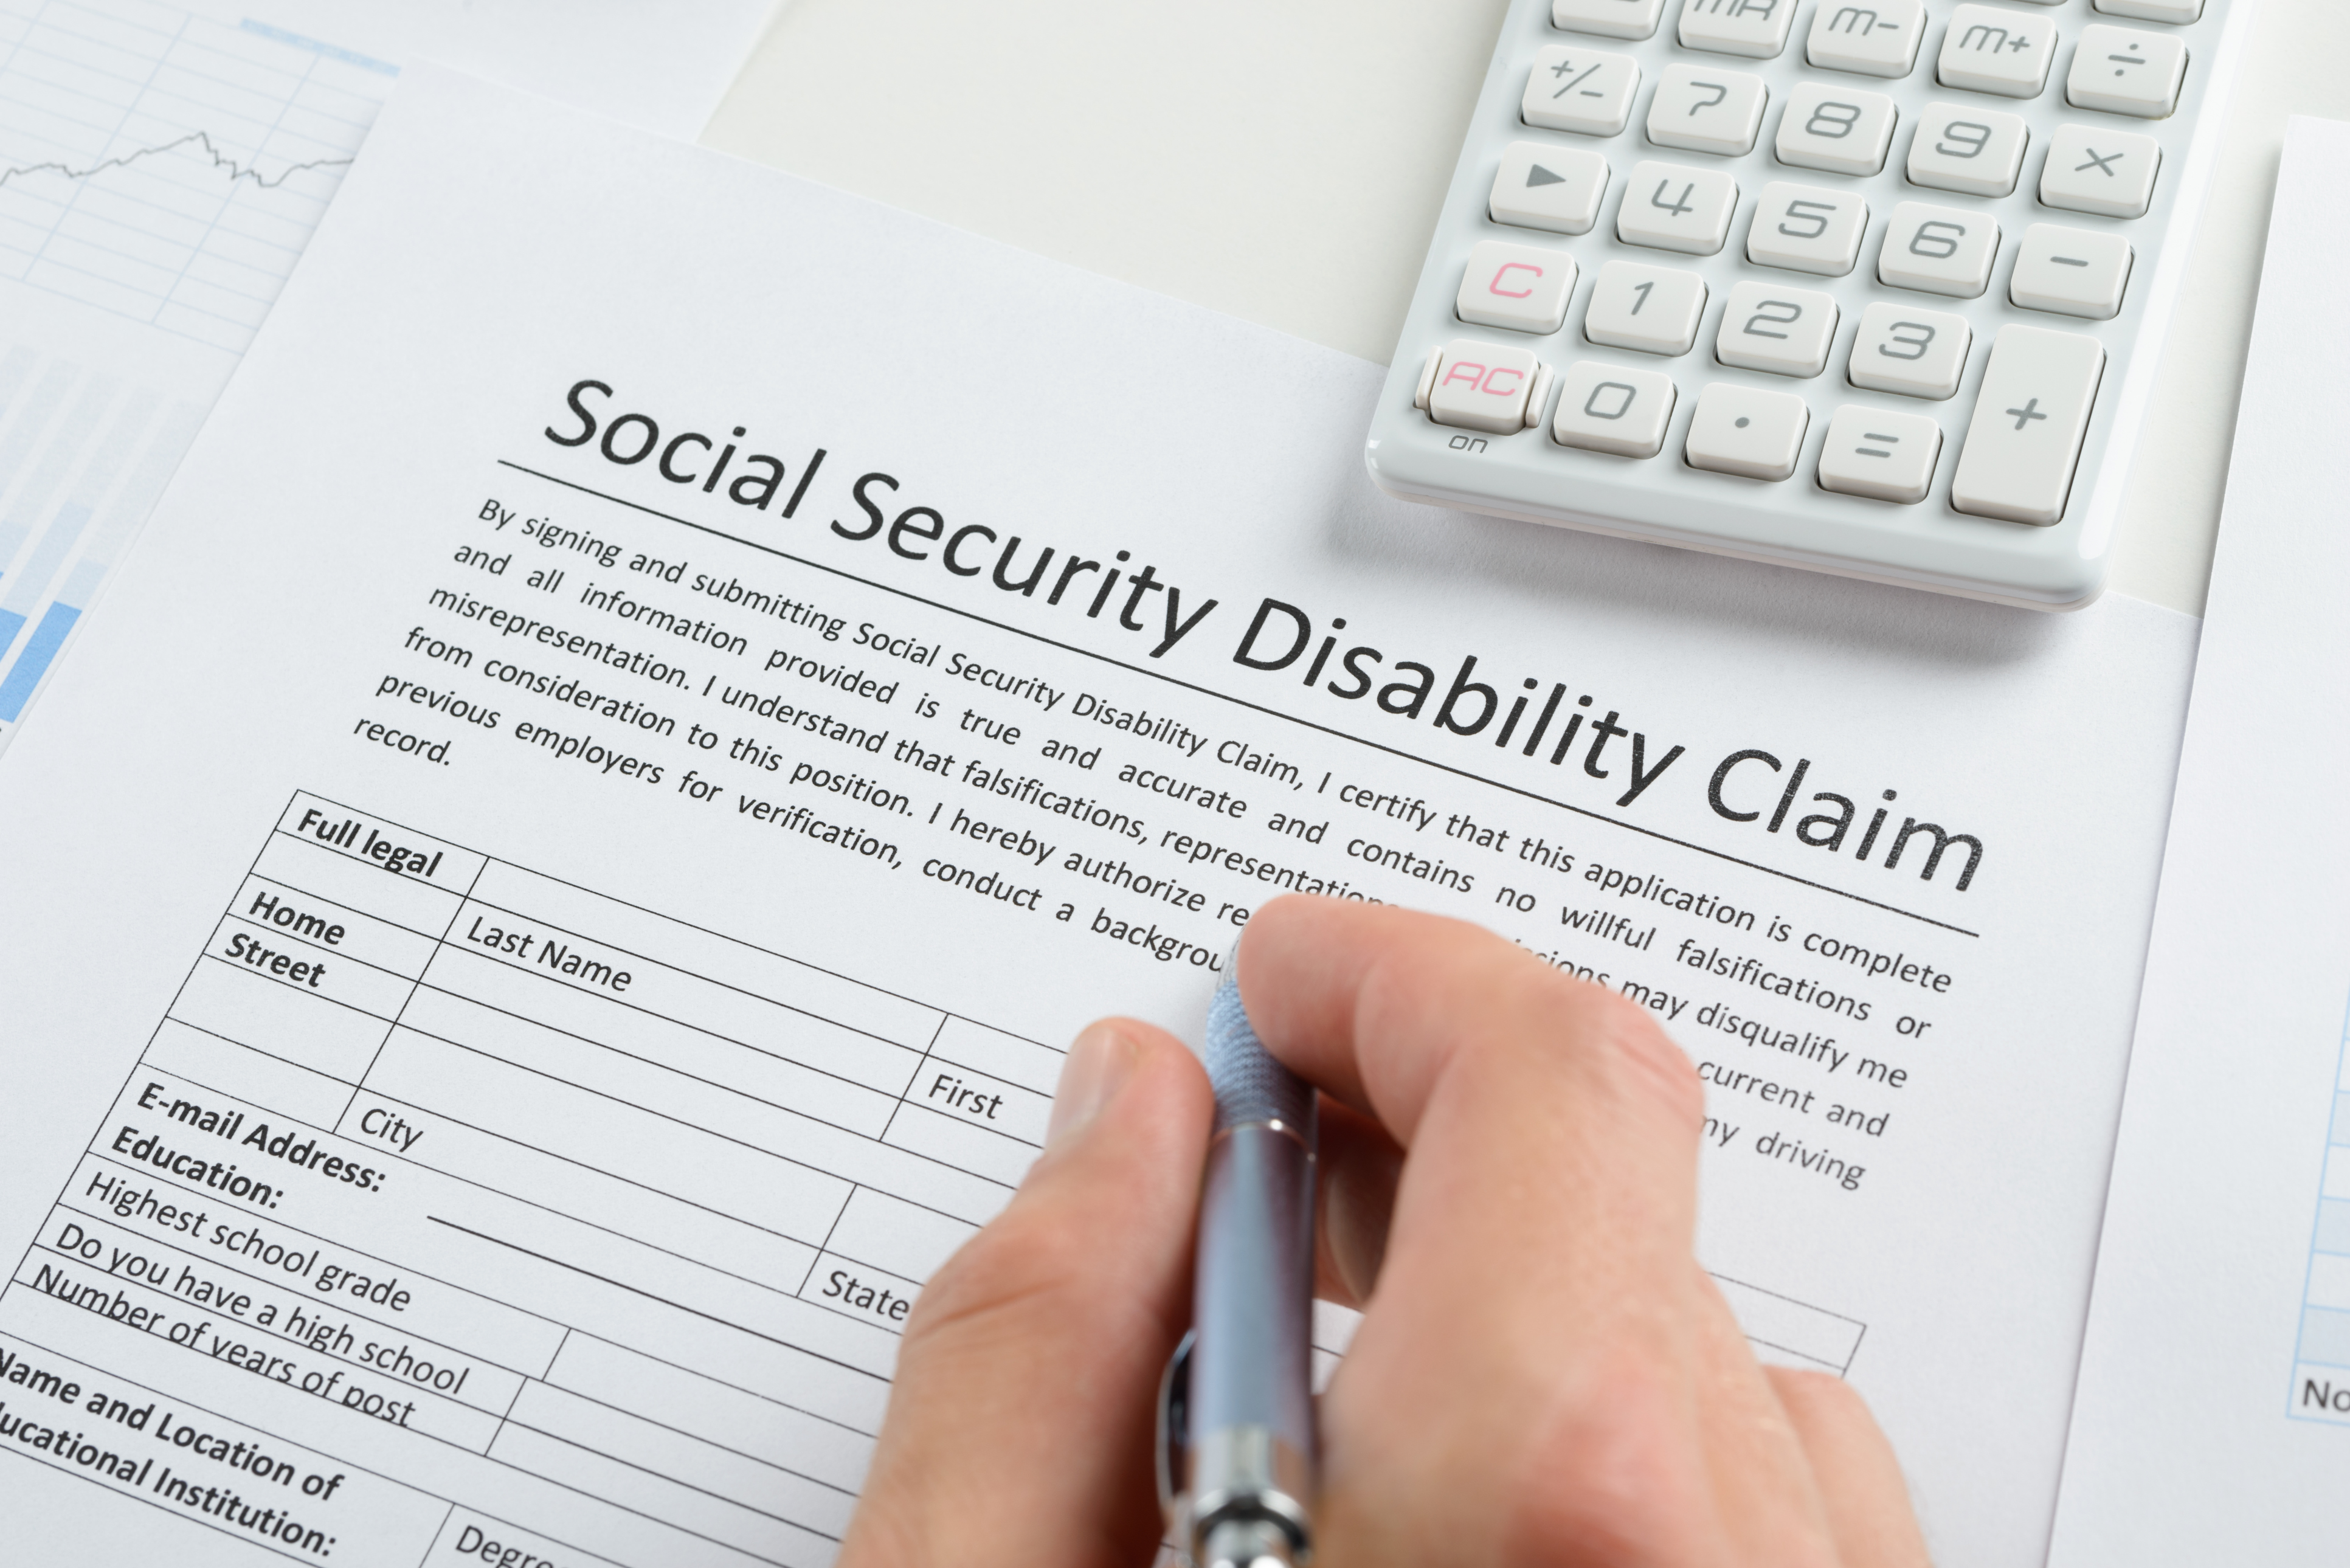 Do You Qualify For Social Security Disability Benefits In Maryland?